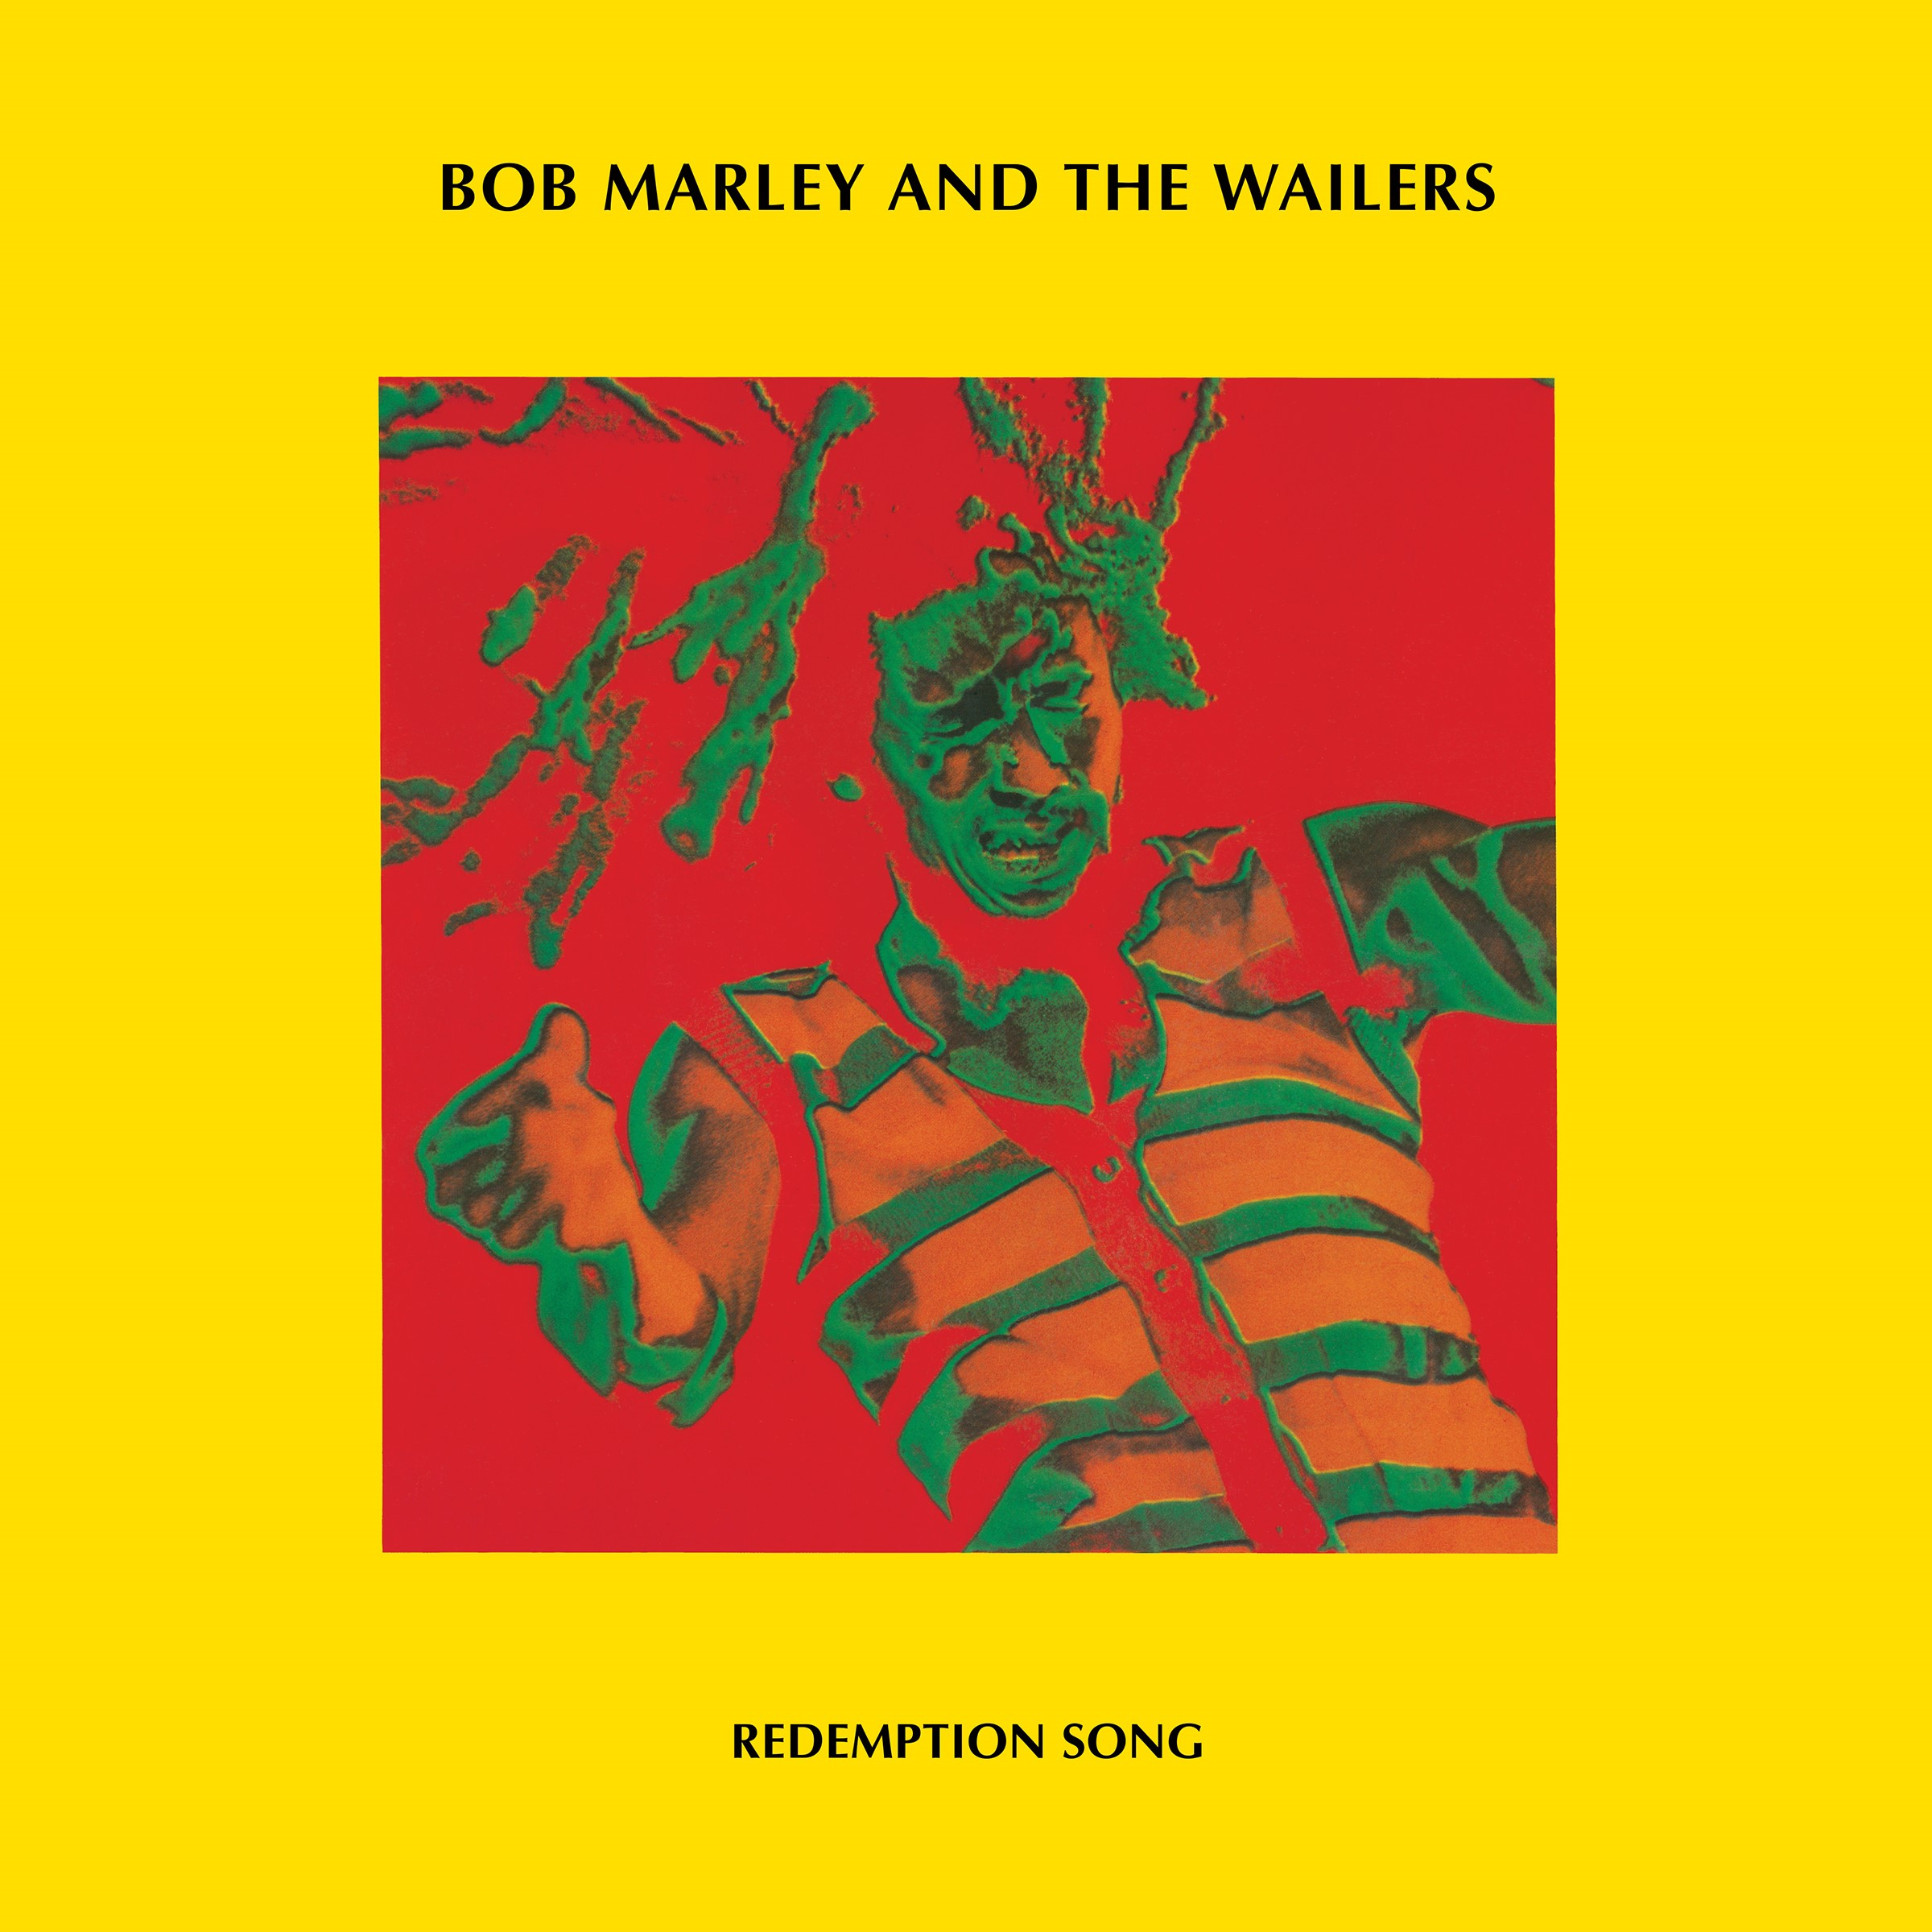 Bob Marley & The Wailers - Redemption Song [RSD Drops Aug 2020]